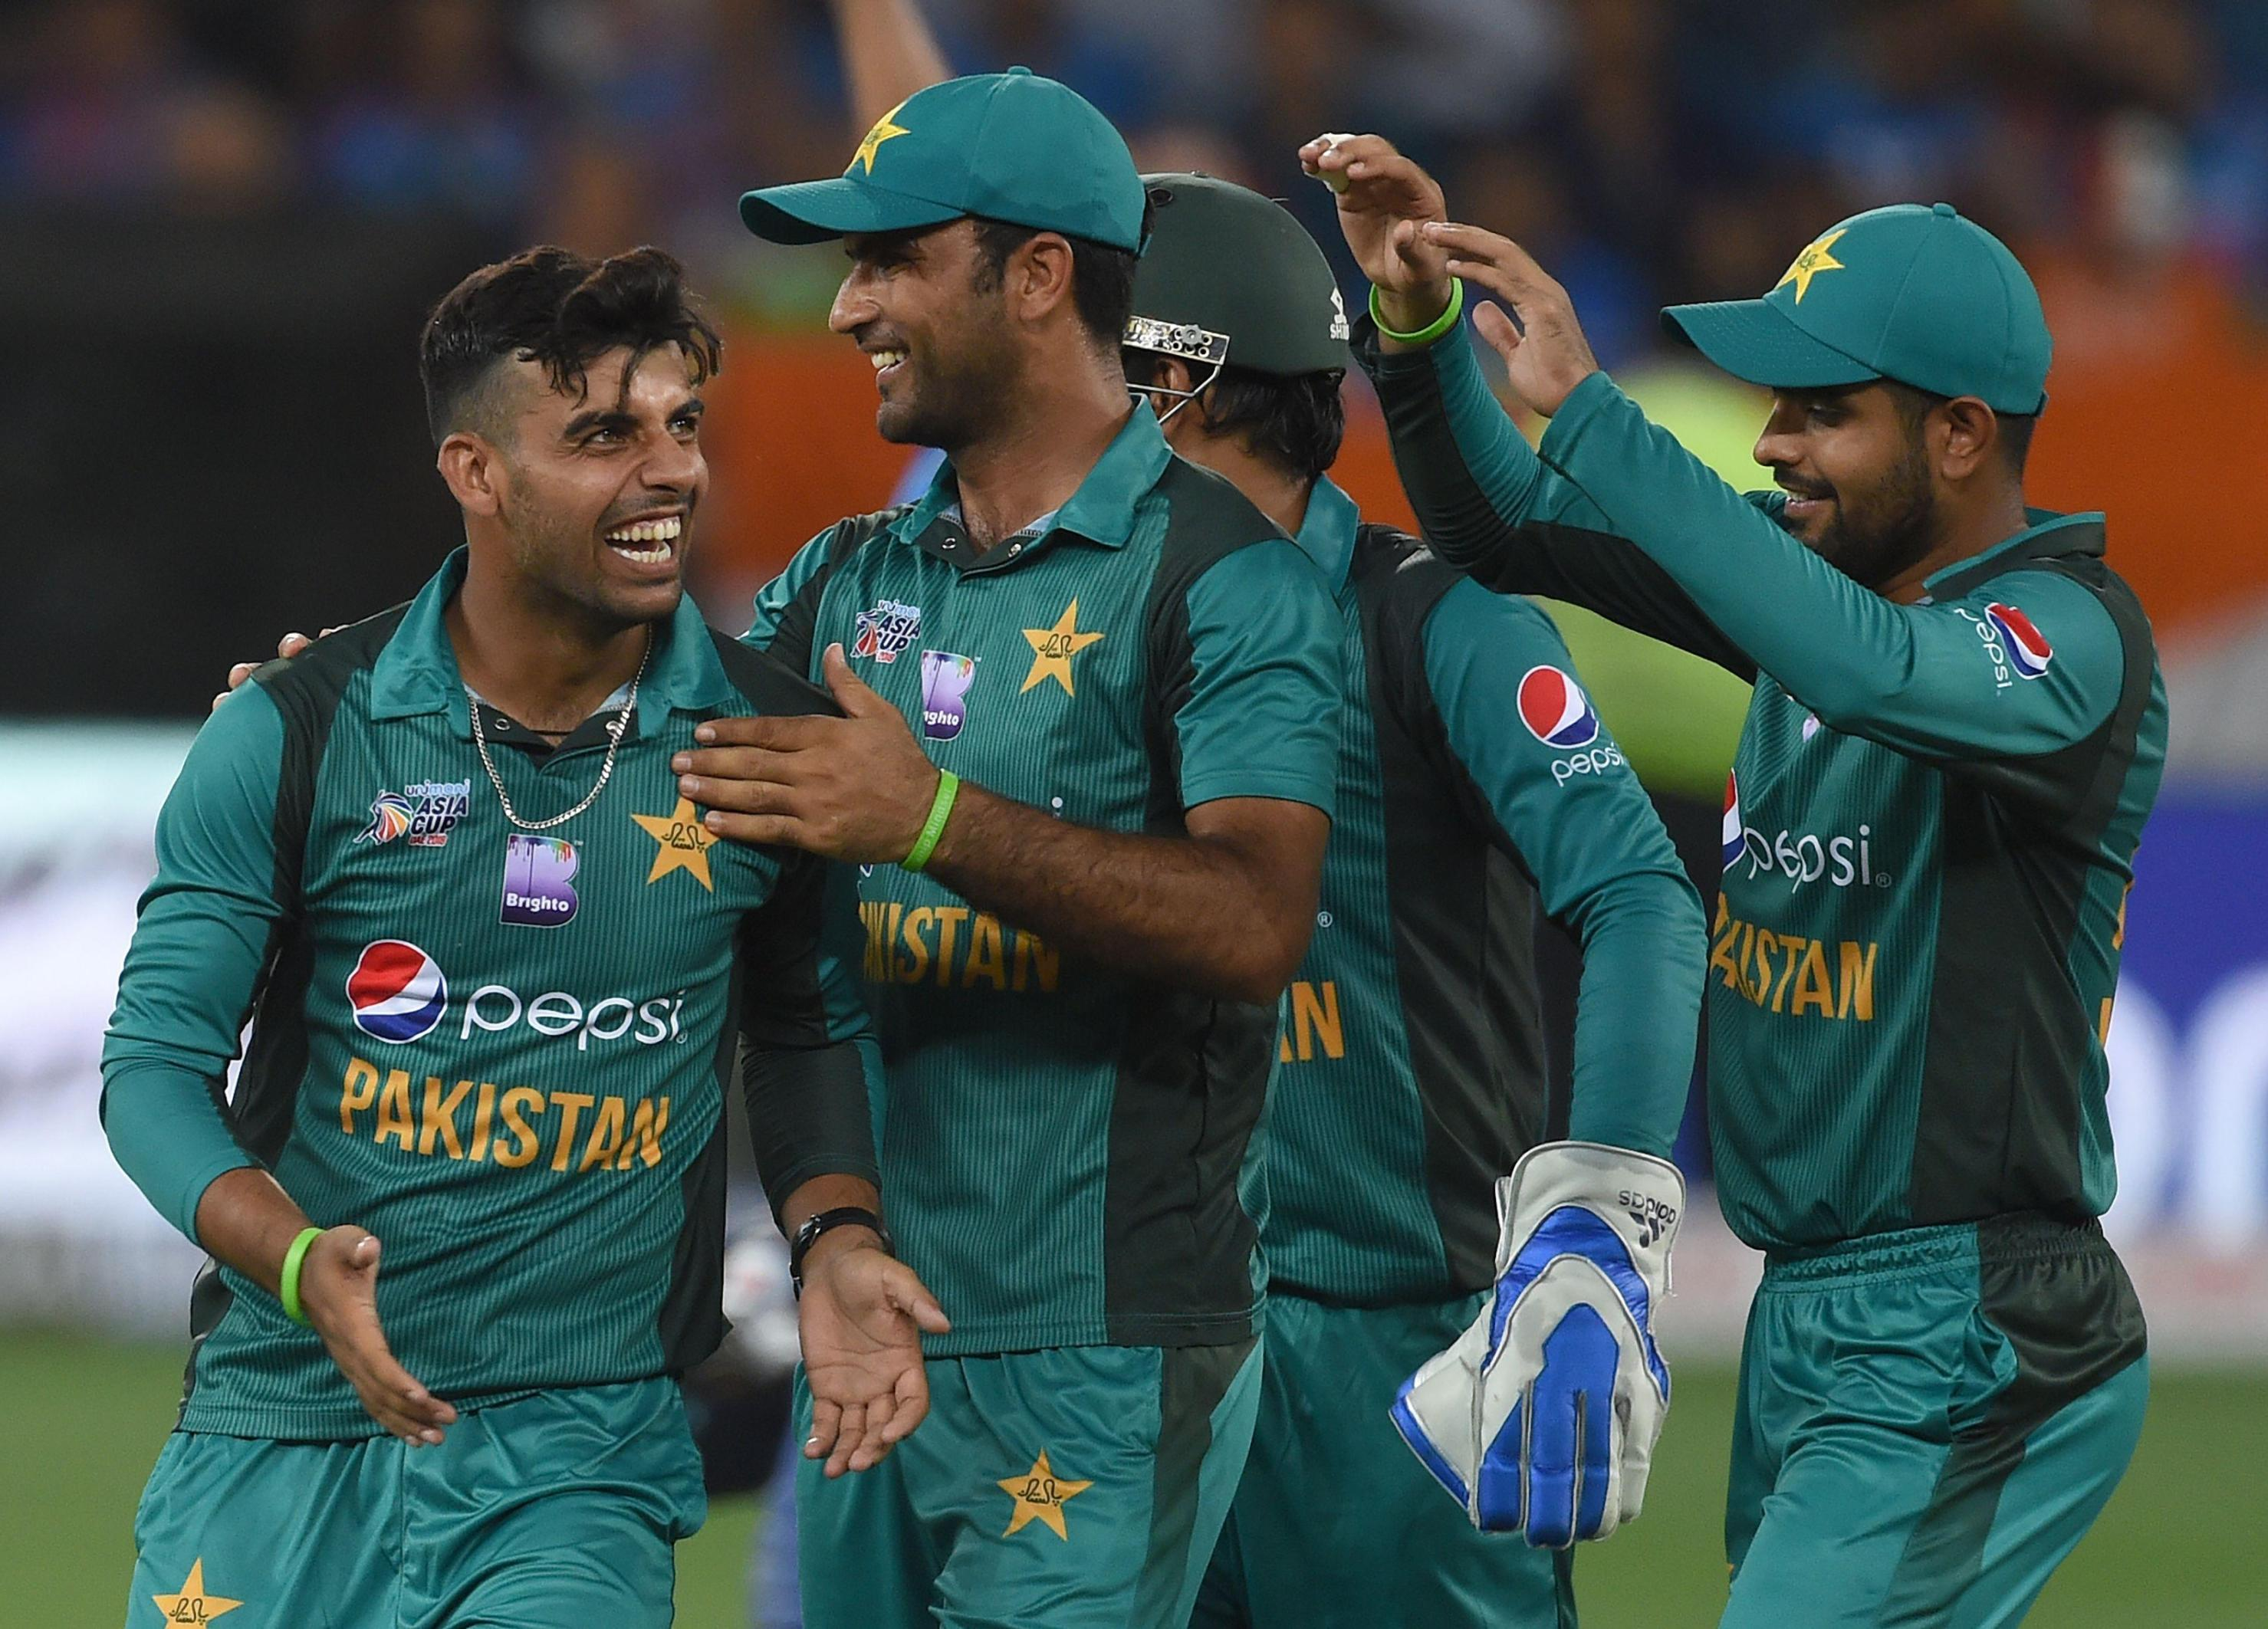 Pakistan followed up a good Test series win over Australia with victory in the T20 internationals